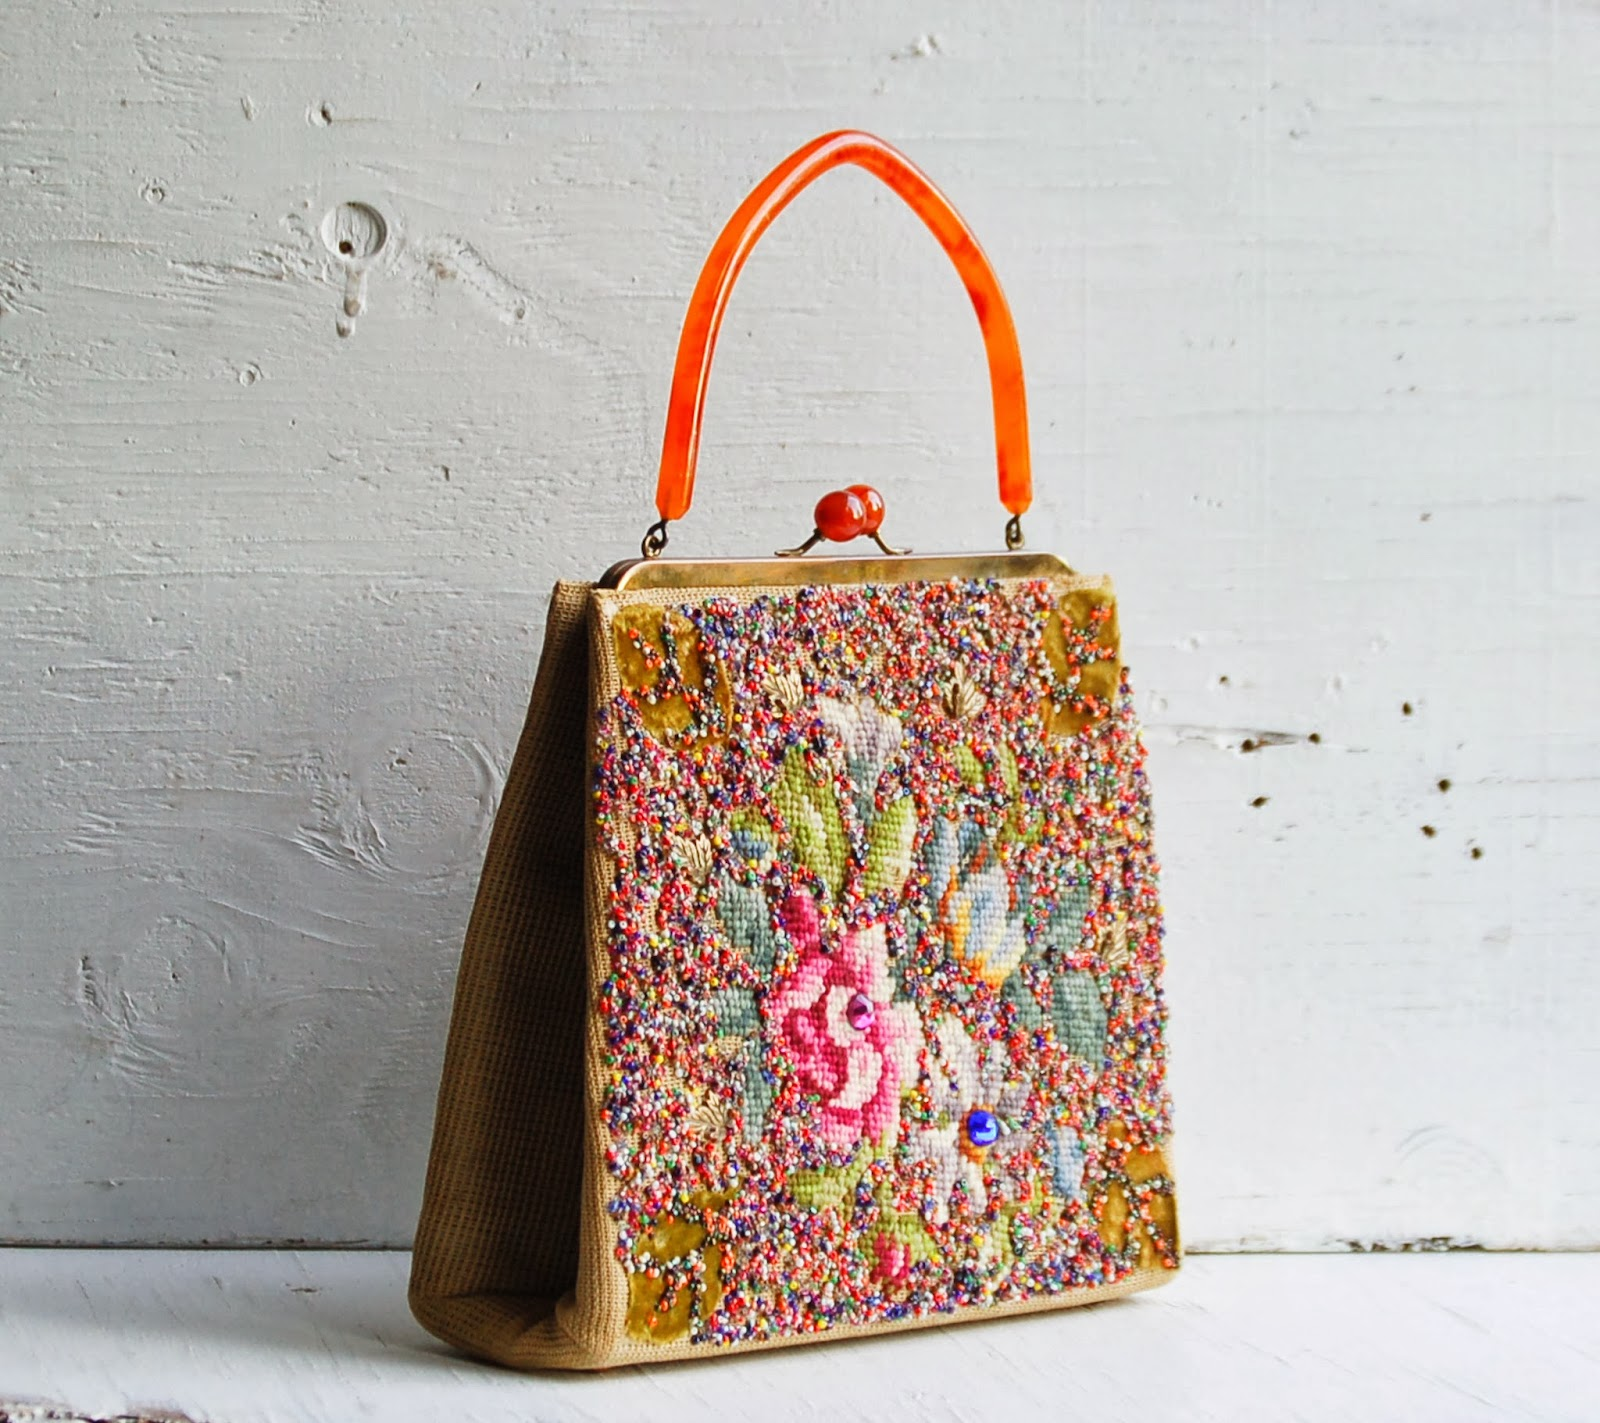 https://www.etsy.com/listing/174647133/vintage-beaded-handbag-soure-of-new-york?ref=shop_home_active